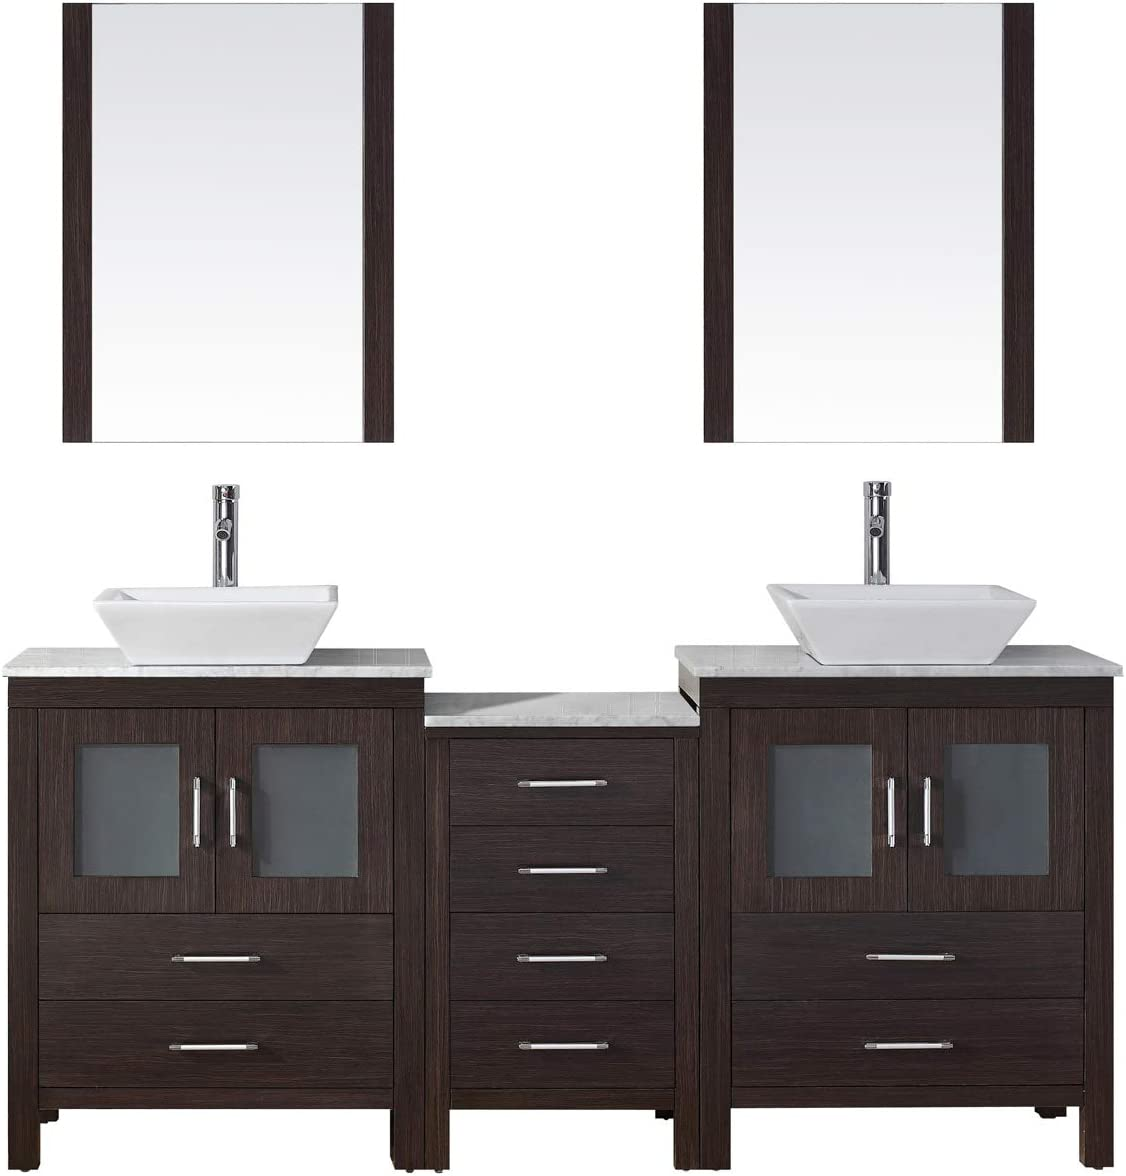 Virtu Usa Kd 70066 Wm Es 001 Dior 66 Double Bathroom Vanity Marble Top And Square Sink With Brushed Nickel Faucet And Mirrors 66 Inches Dark Espresso Amazon Com